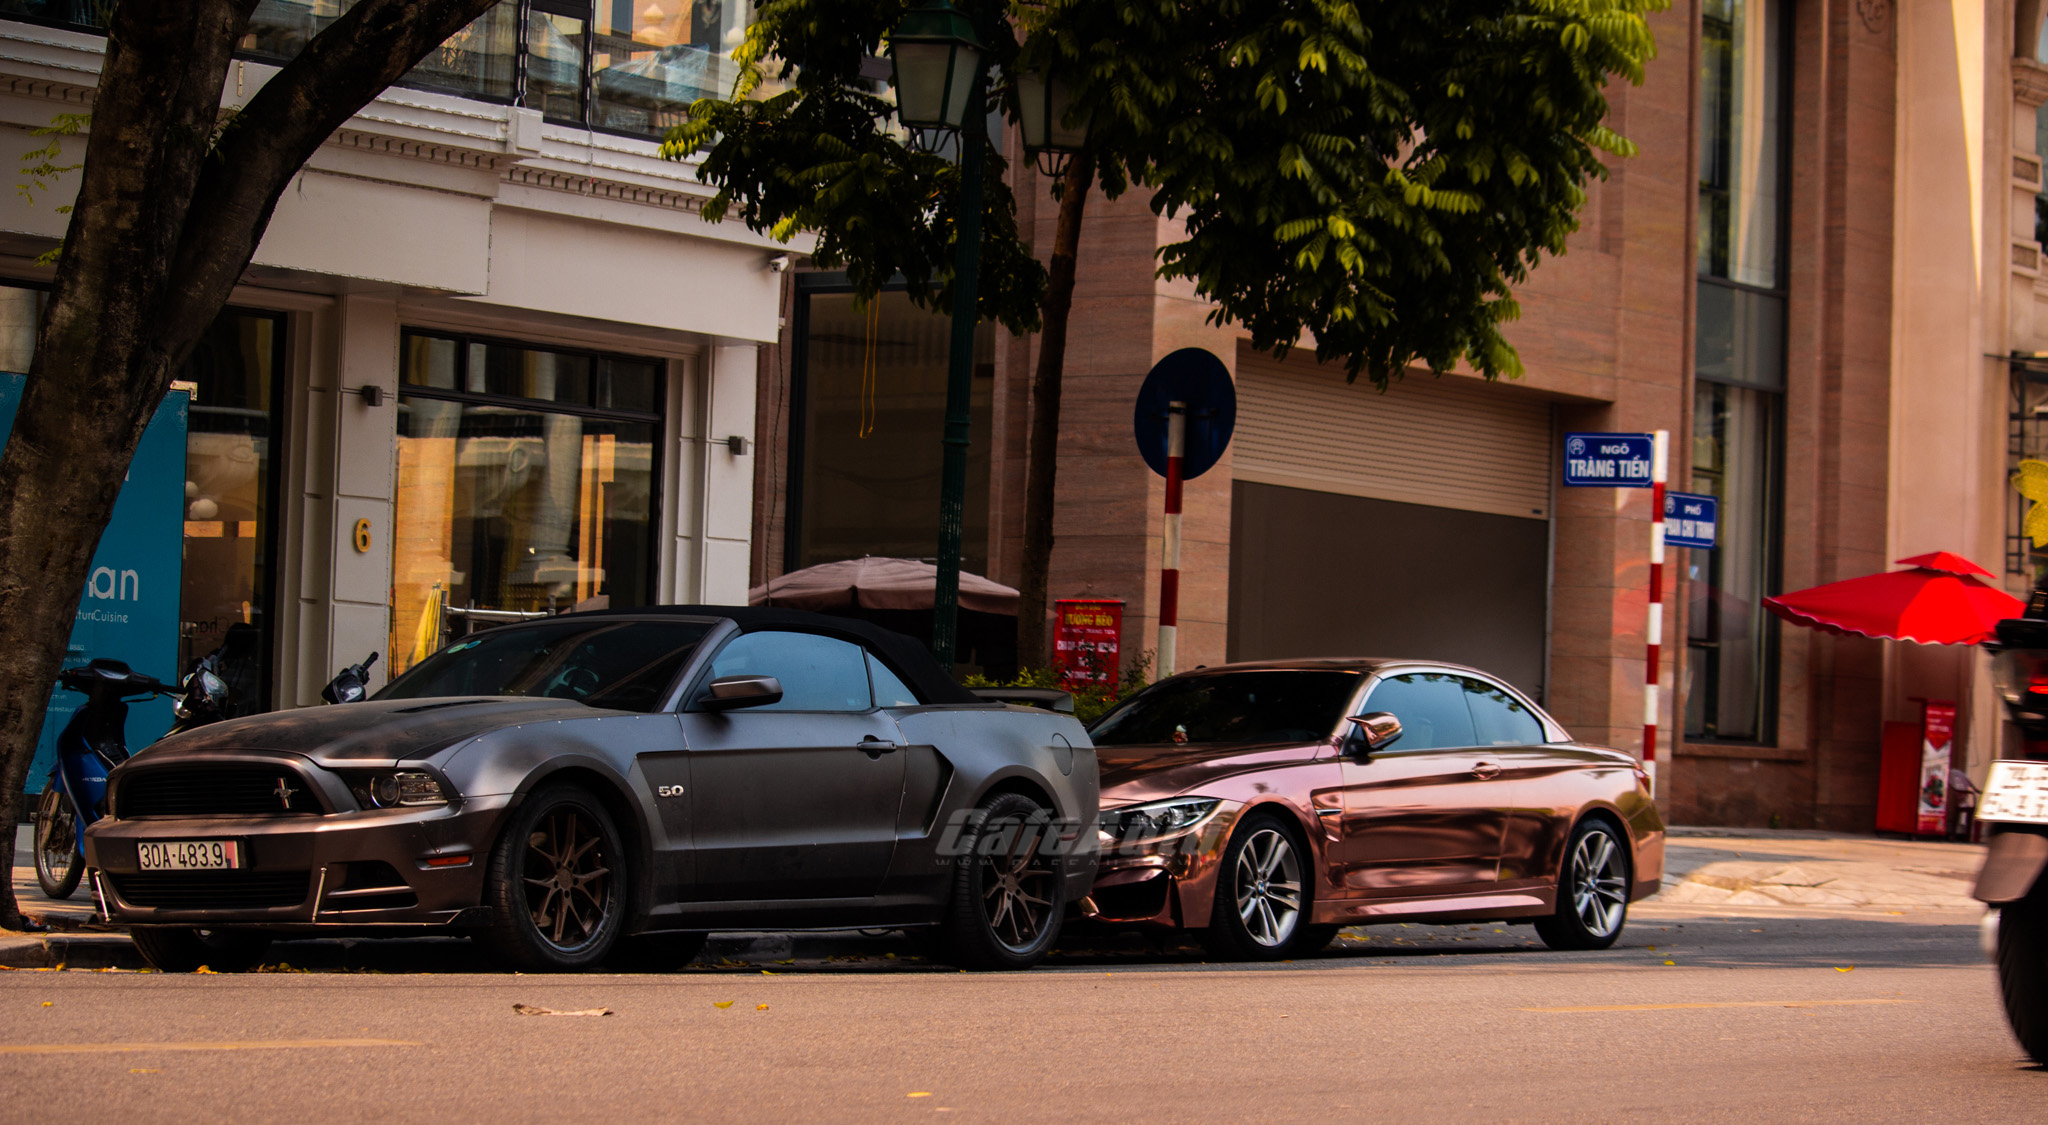 mustangGT-cafeautovn-1